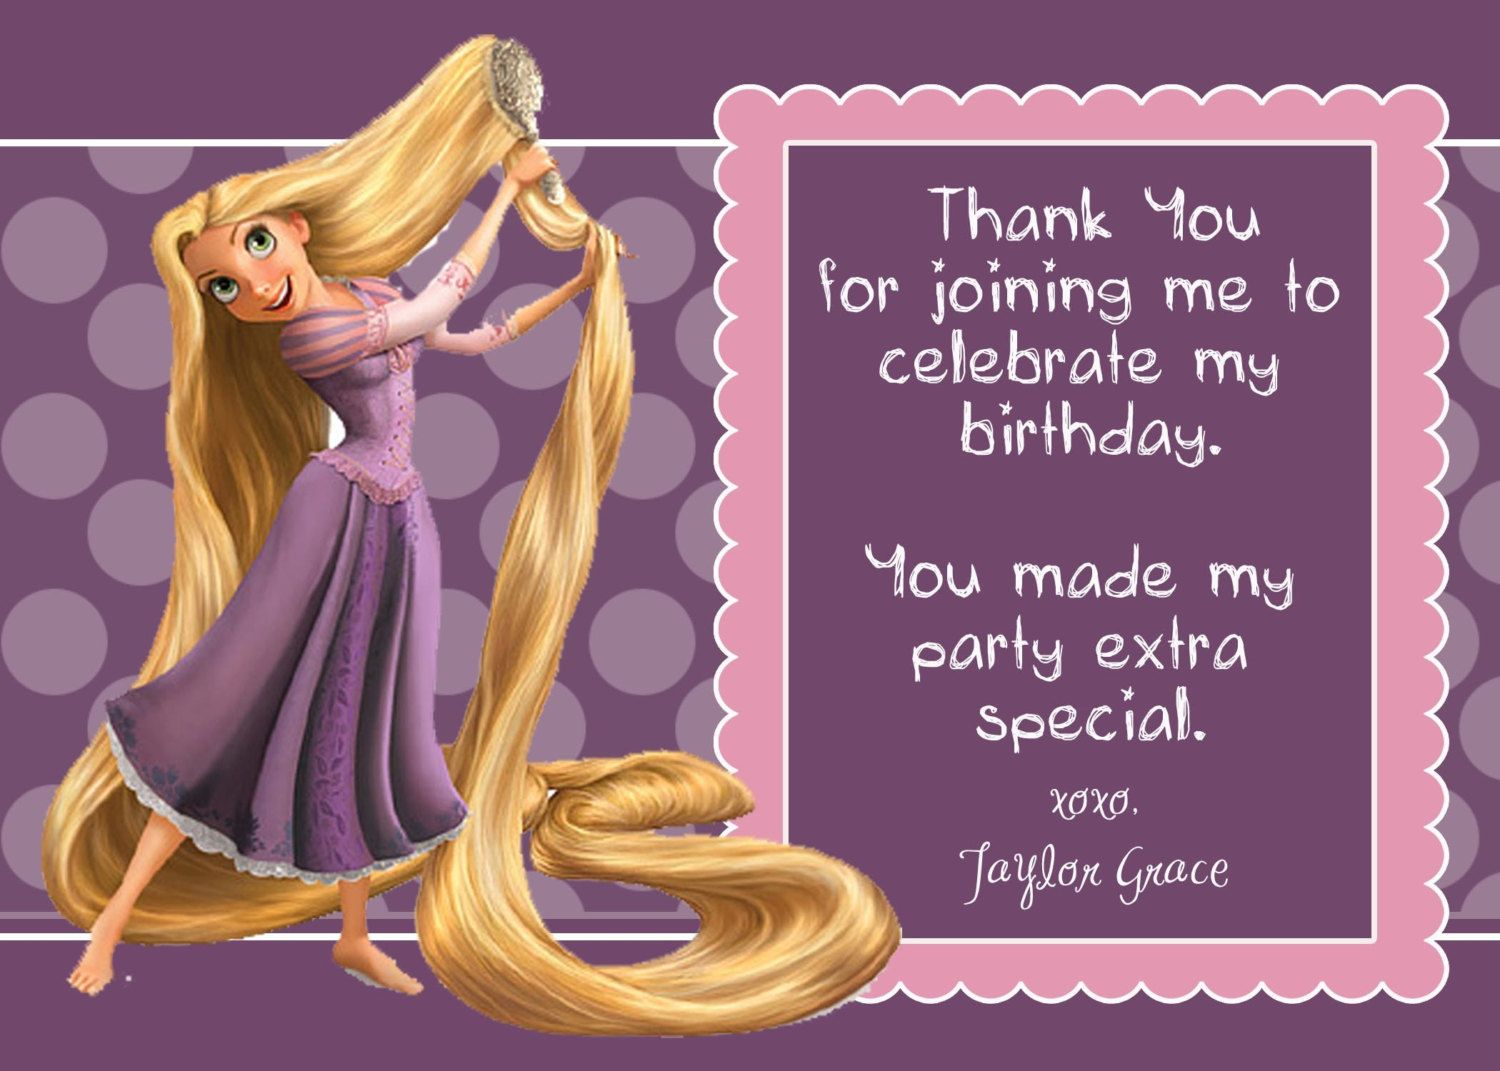 Rapunzel birthday card google search enredados fiesta rapunzel birthday card google search bookmarktalkfo Image collections